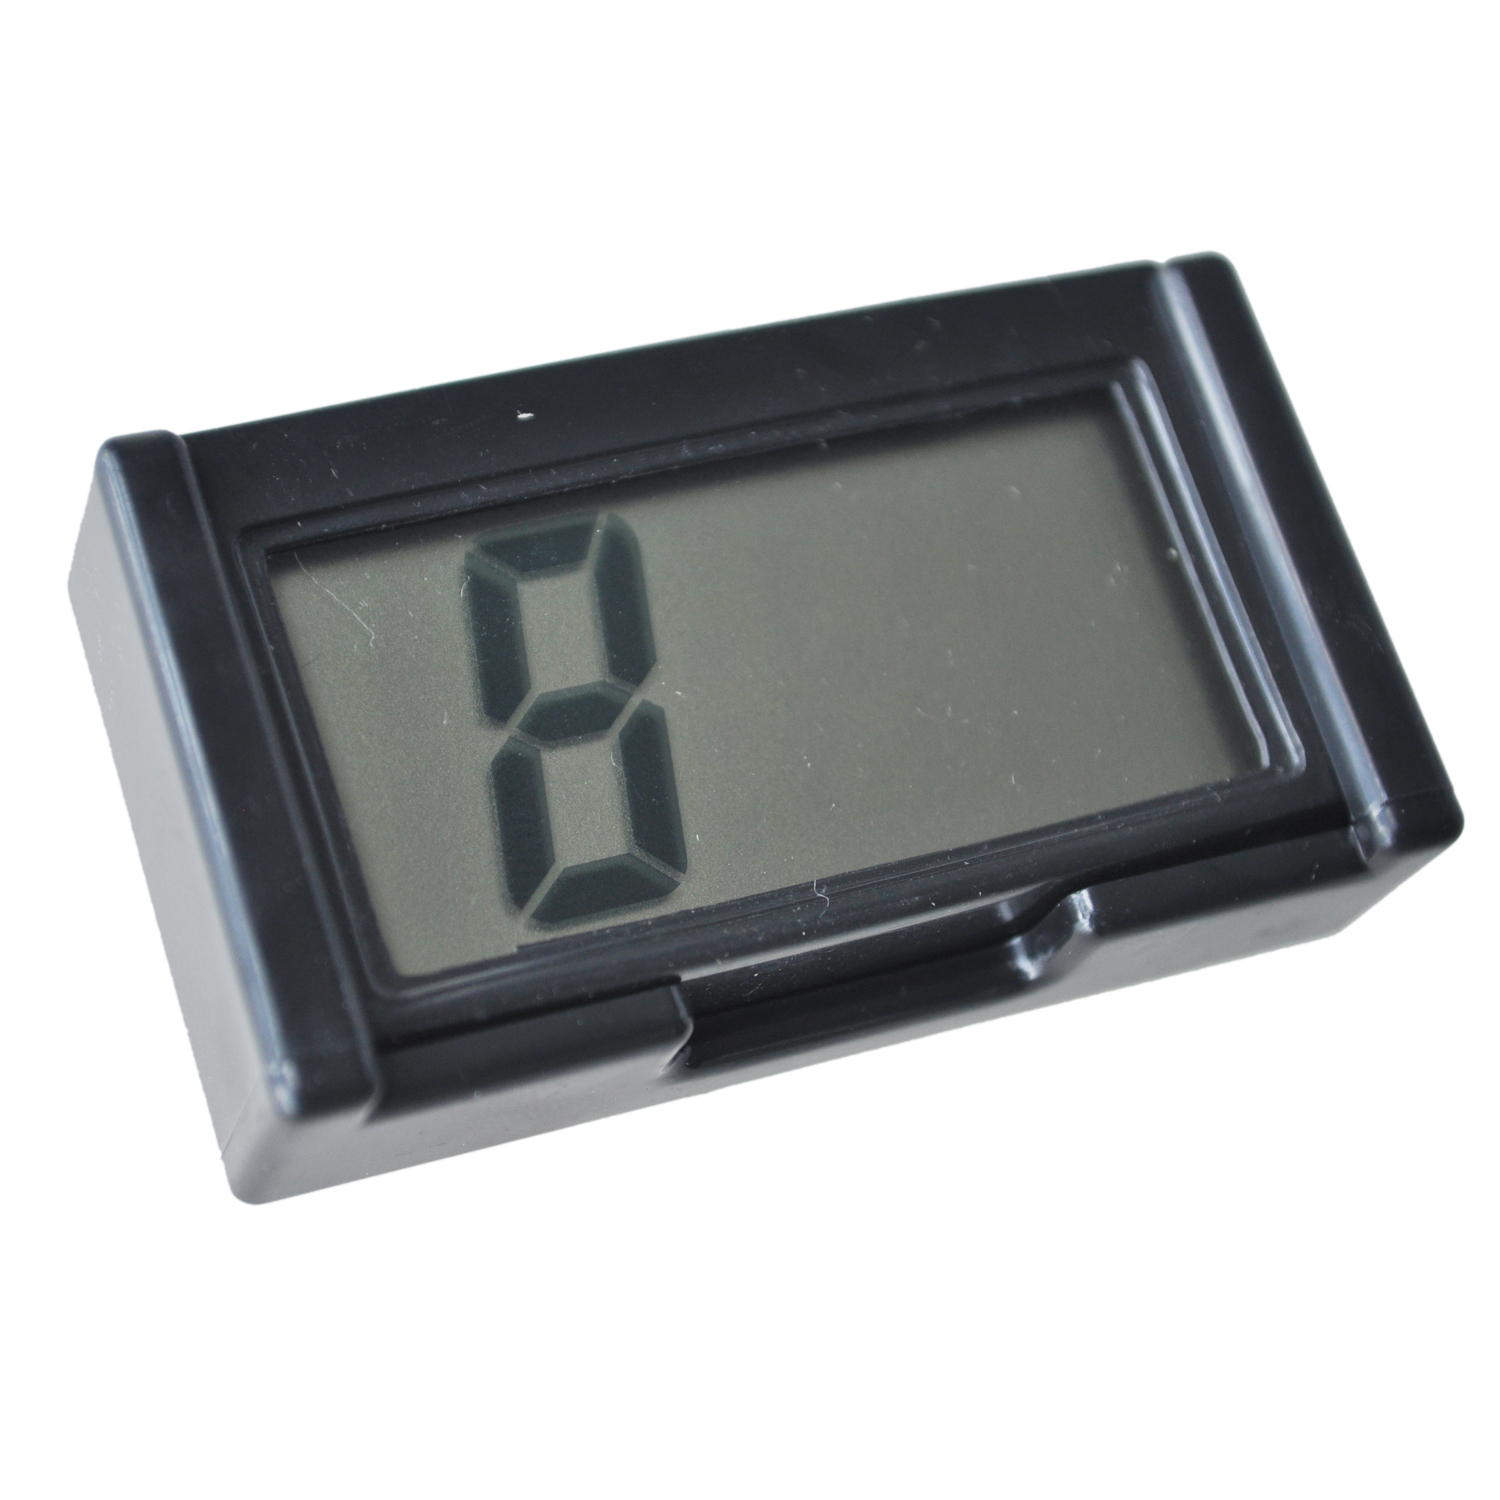 lcd numerique voiture tableau de bord bureau date heure calendrier horloge r6x9 ebay. Black Bedroom Furniture Sets. Home Design Ideas